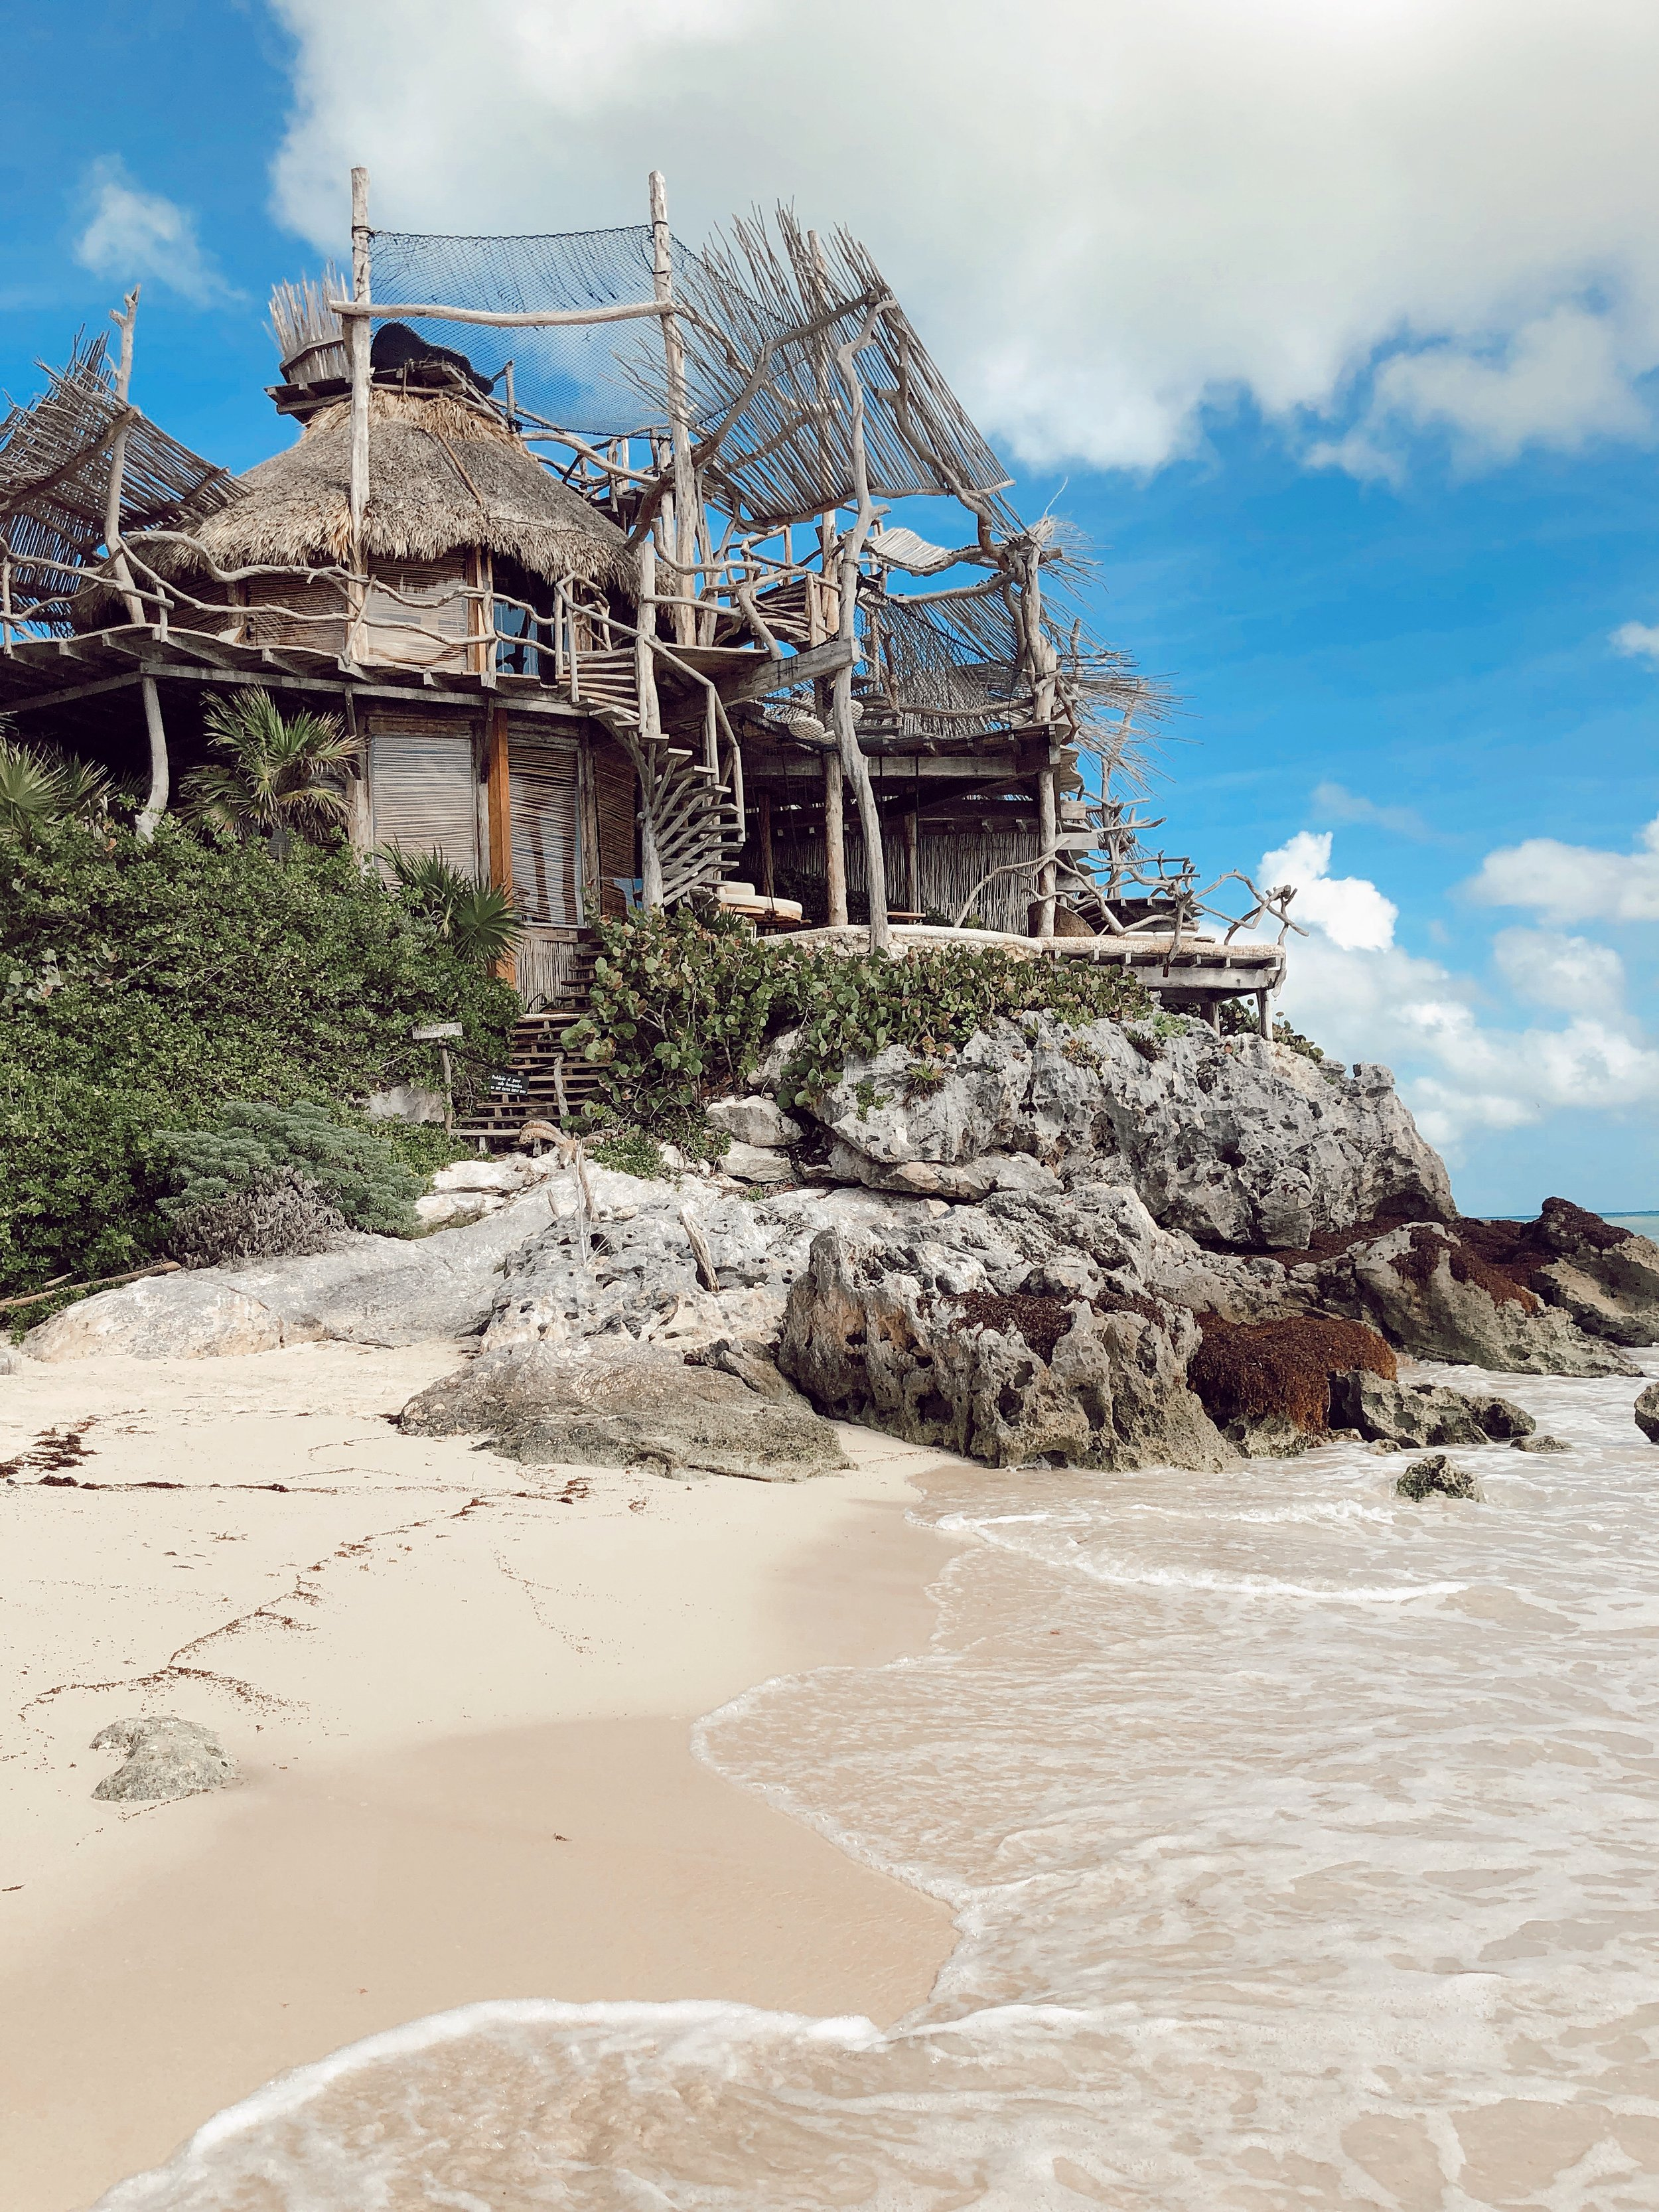 Travel Guide Tulum Mexico Top 20 Vacation Ideas with The Bachelor Caila Quinn Travel Blogger Don't Like Azulik Hotel